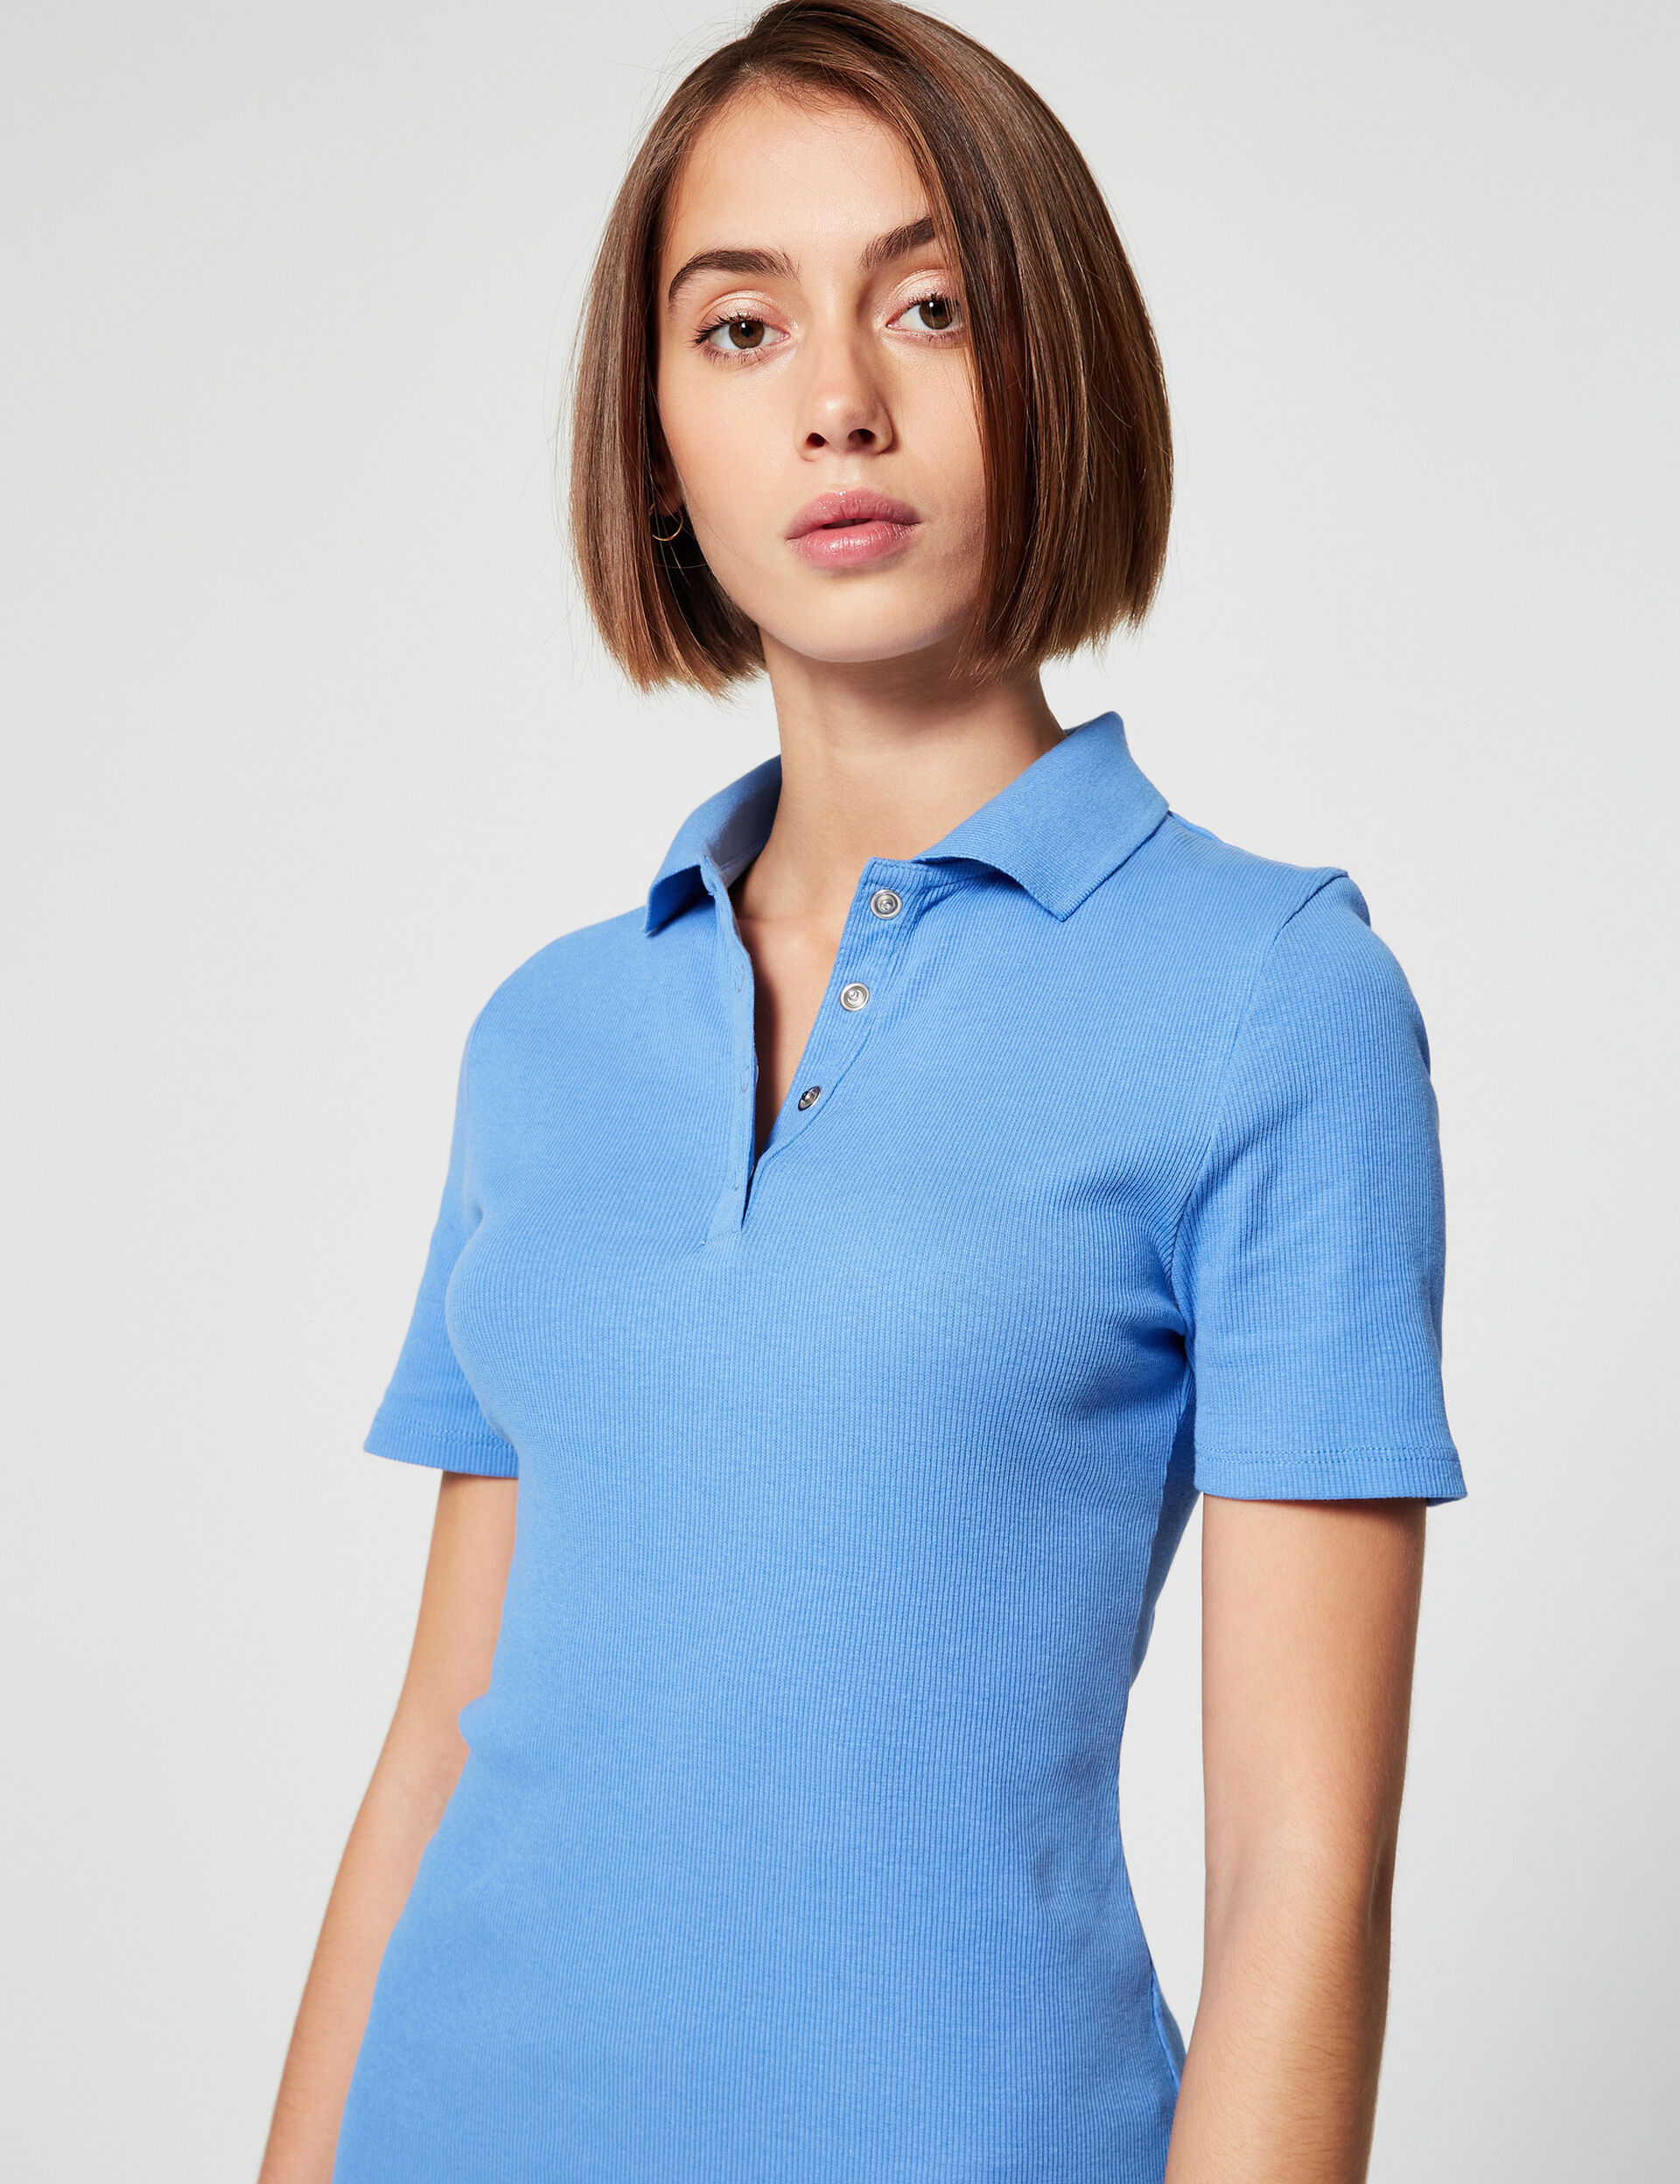 Ribbed dress with polo-shirt collar